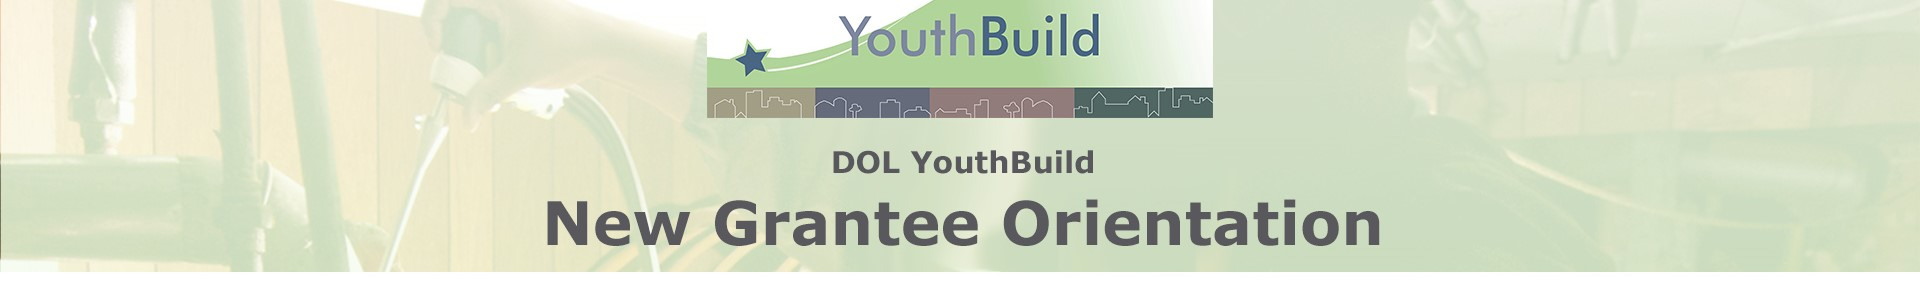 DOL YouthBuild New Grantee Orientation